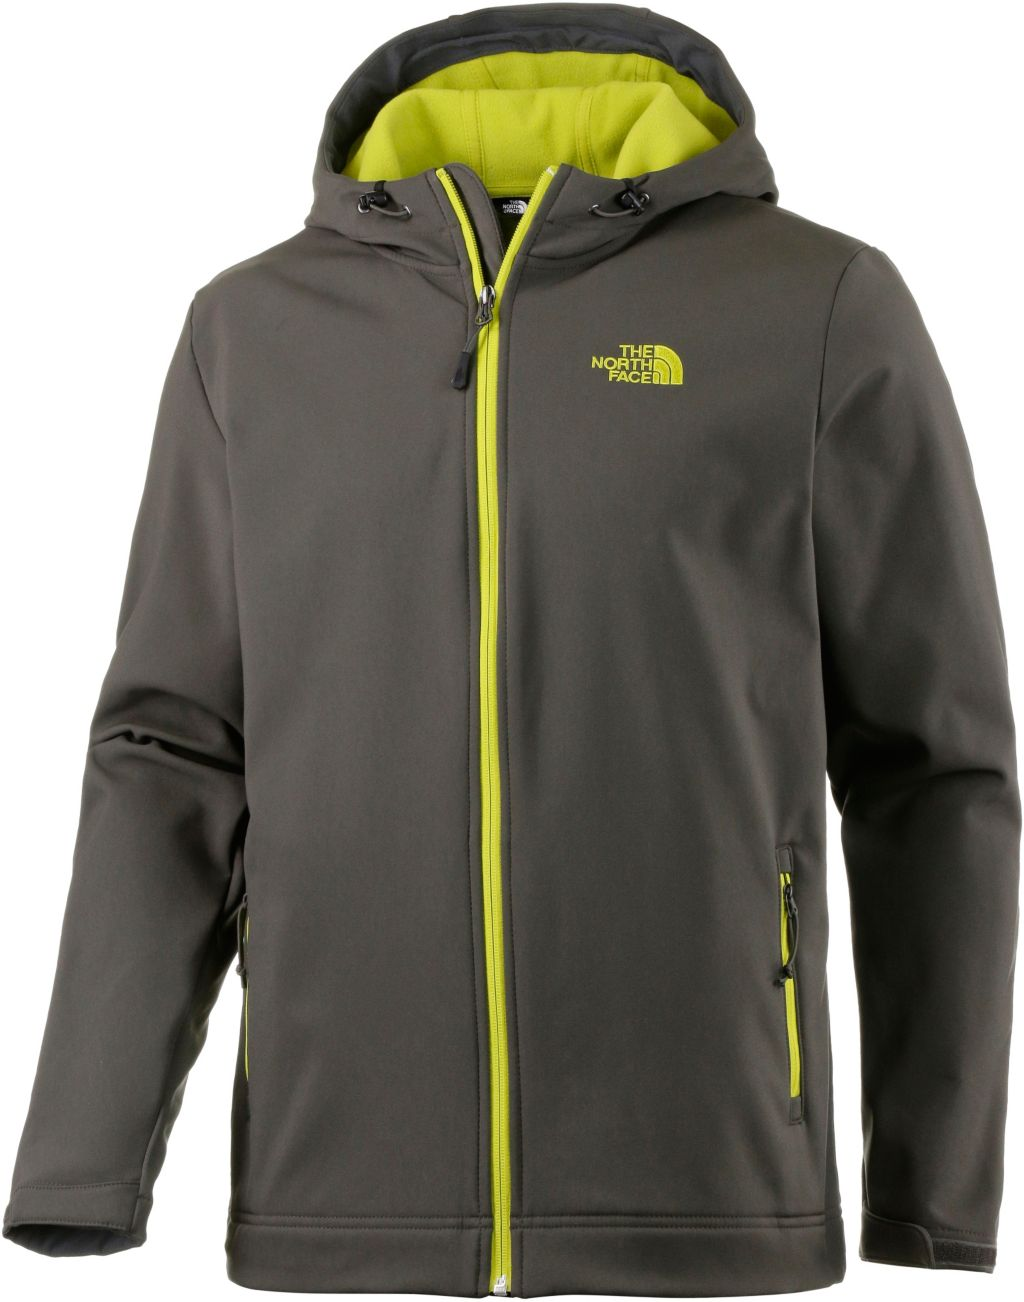 The North Face - Ontario - Softschelljacke